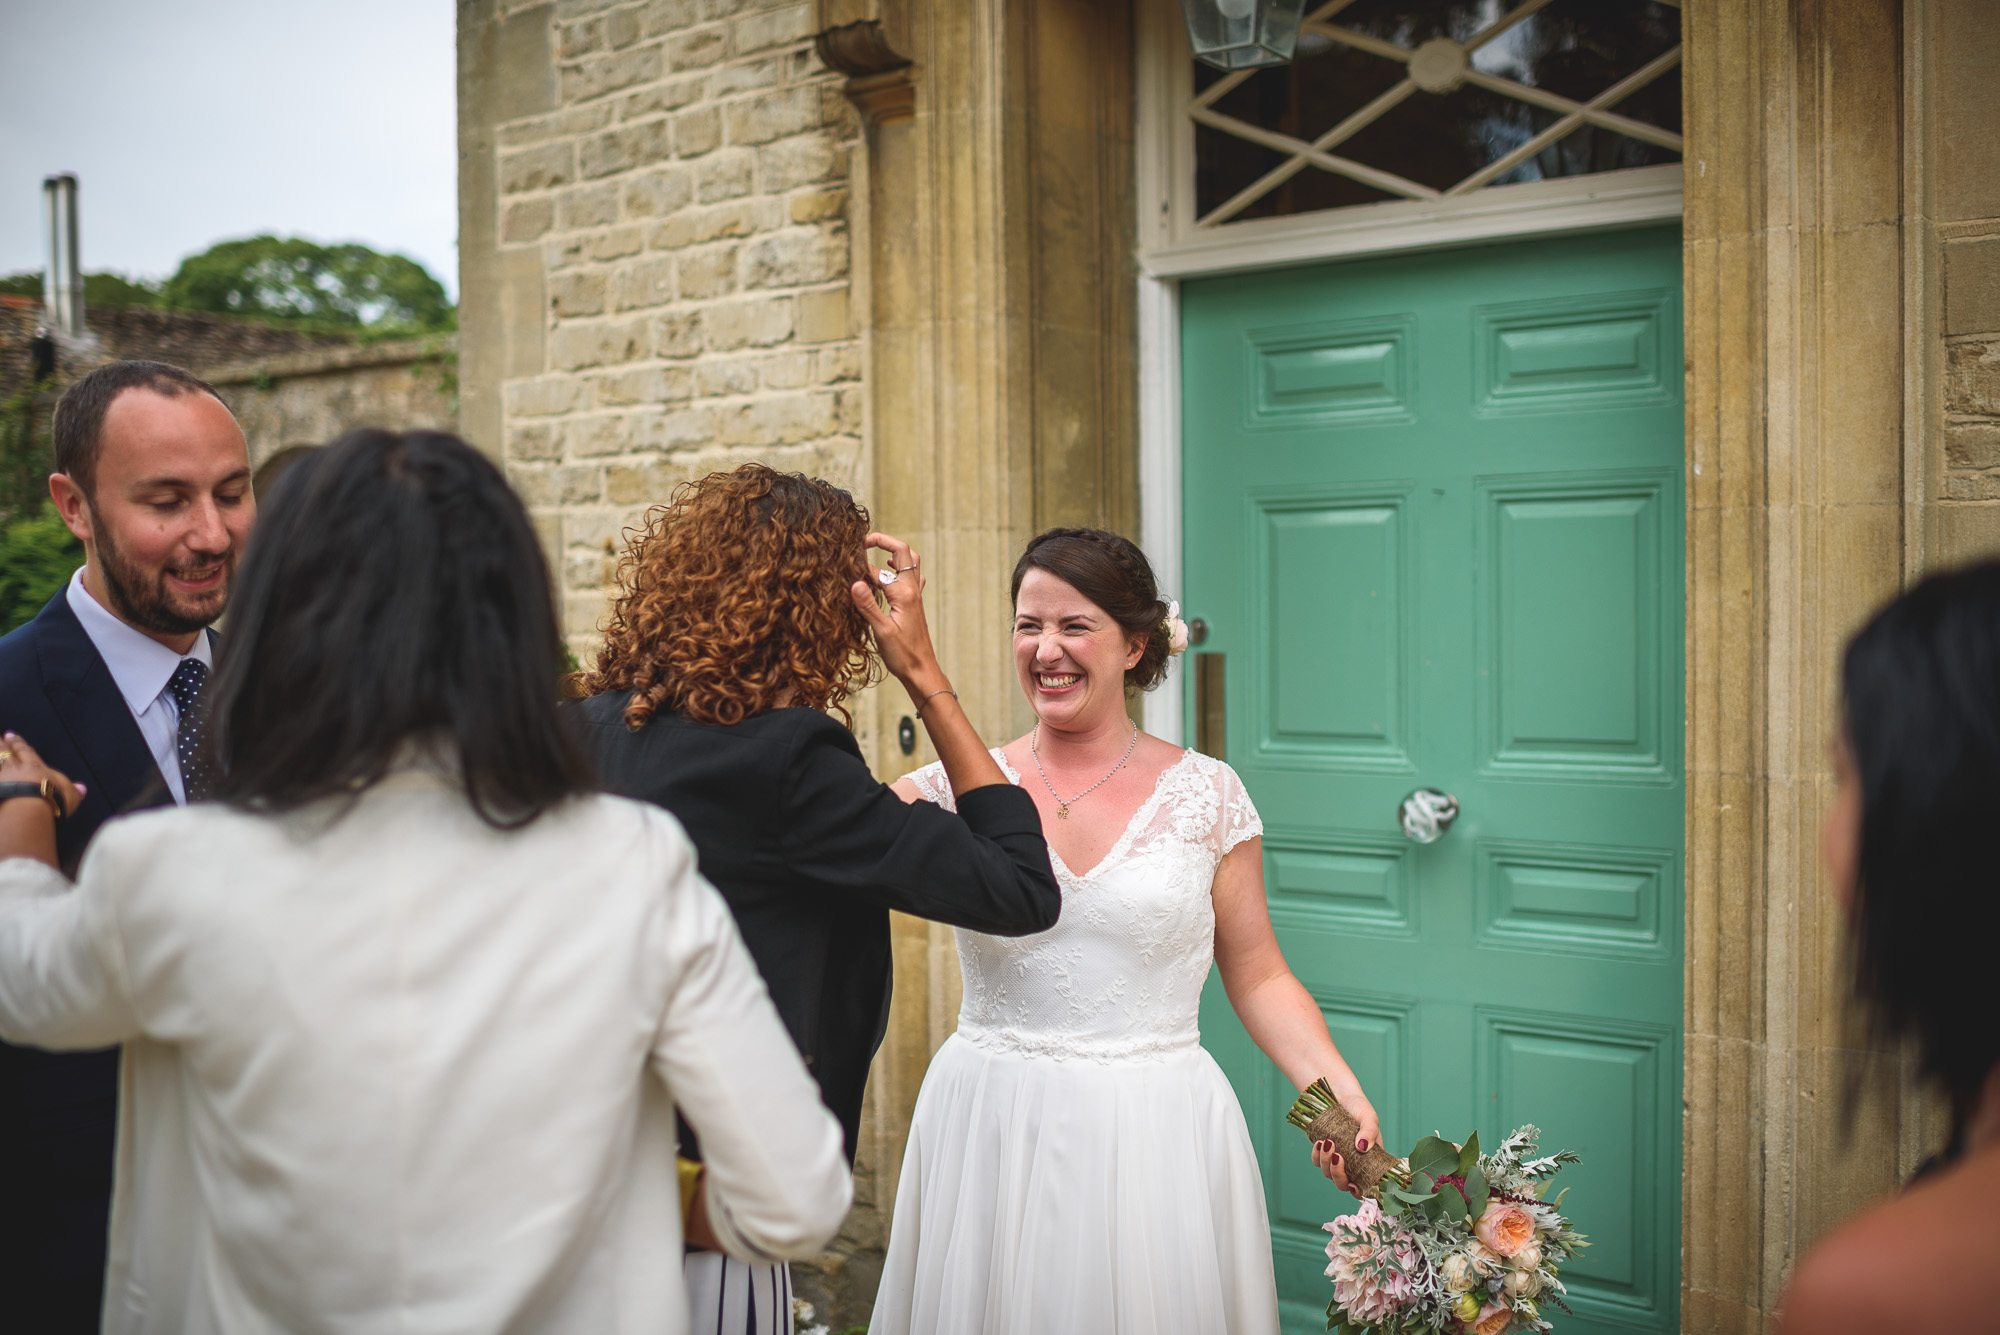 Jem and Andy - - The Rectory at Crudwell wedding photography (168 of 195)